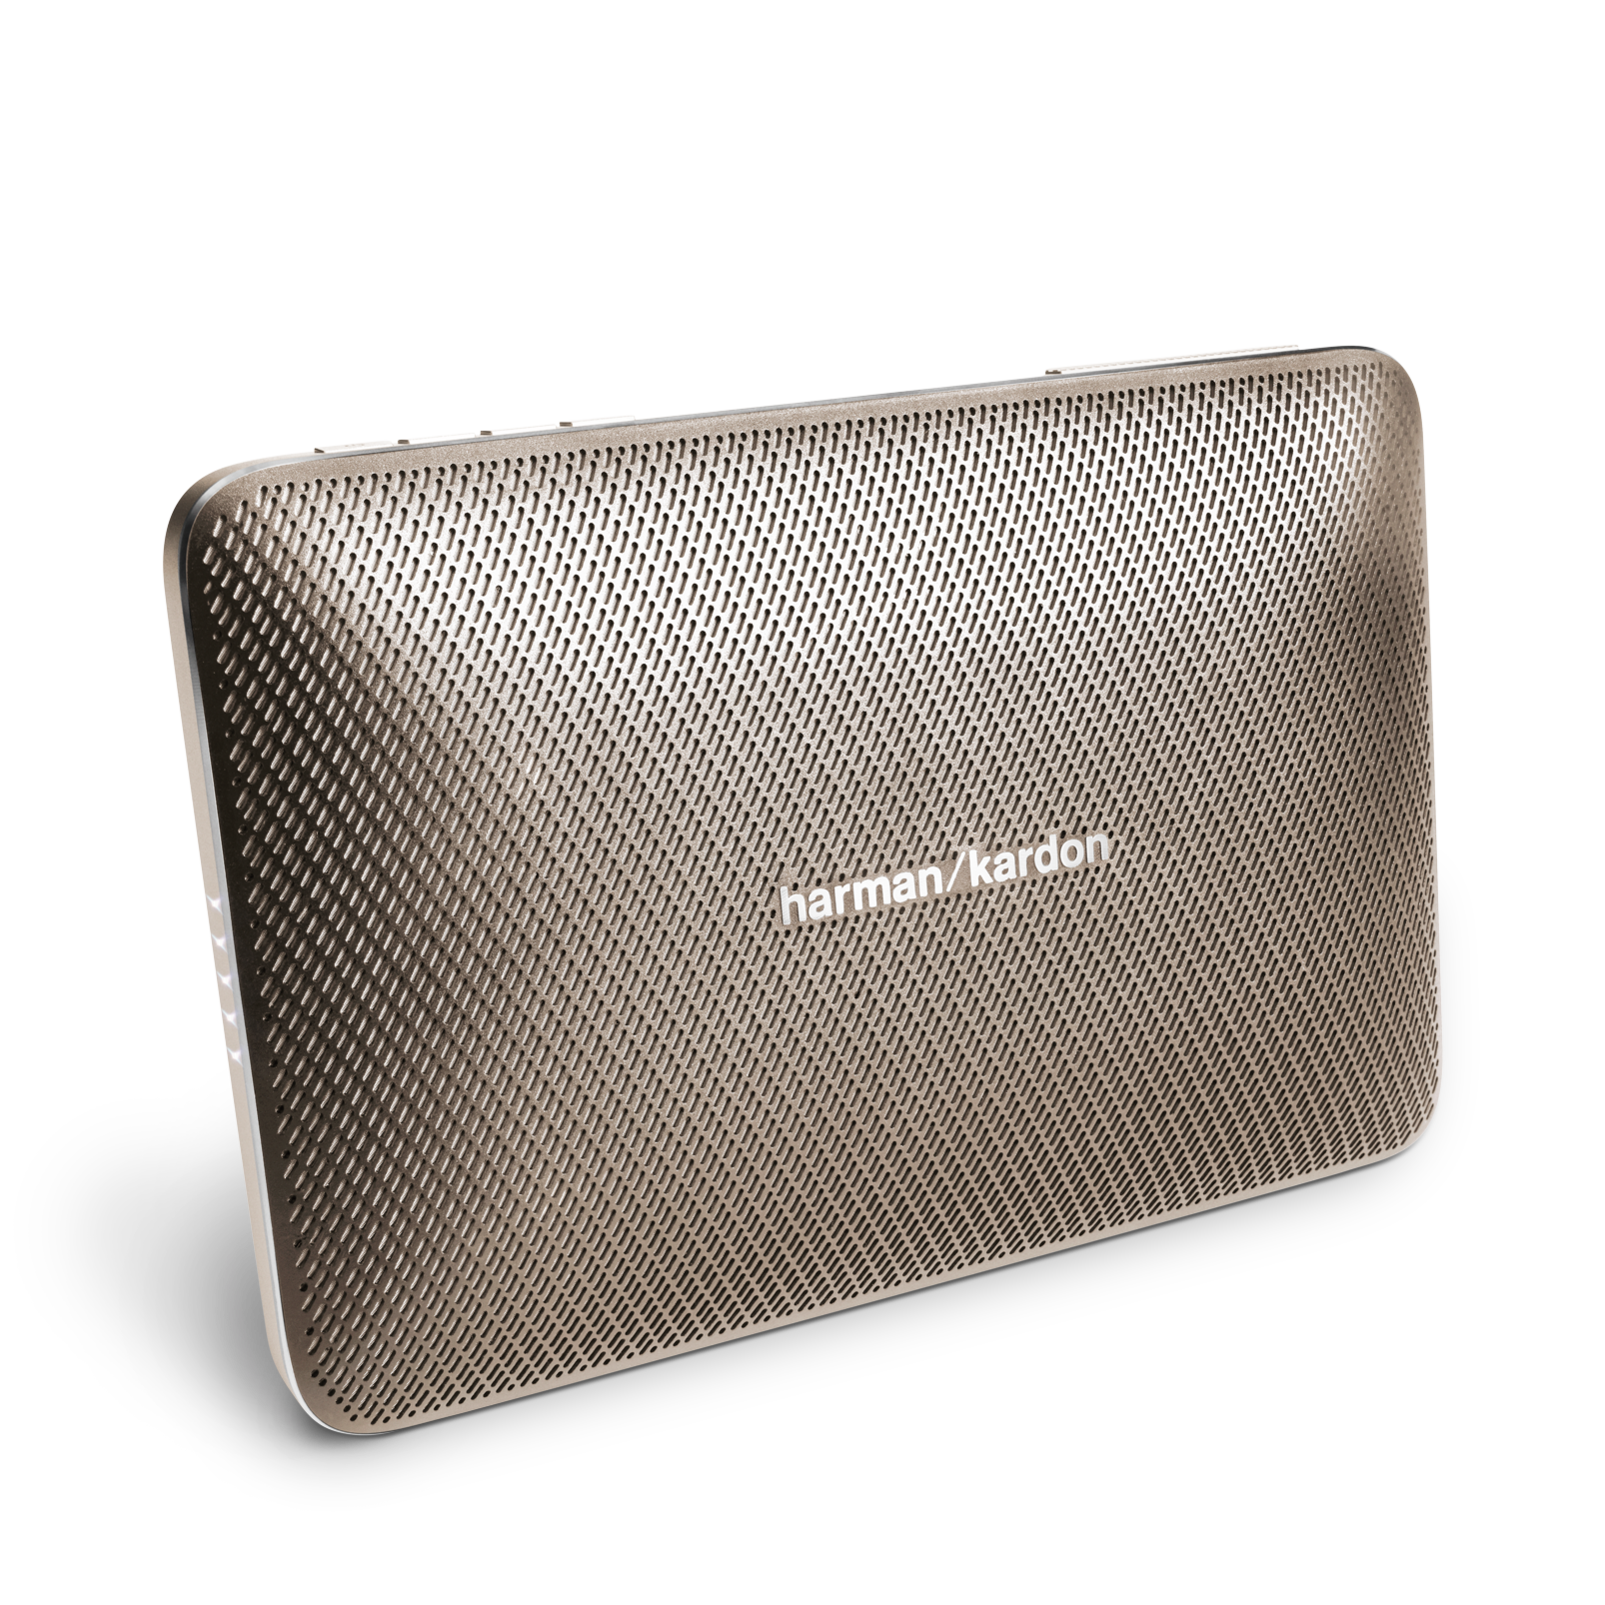 Esquire 2 - Gold - Premium portable Bluetooth speaker with quad microphone conferencing system - Hero